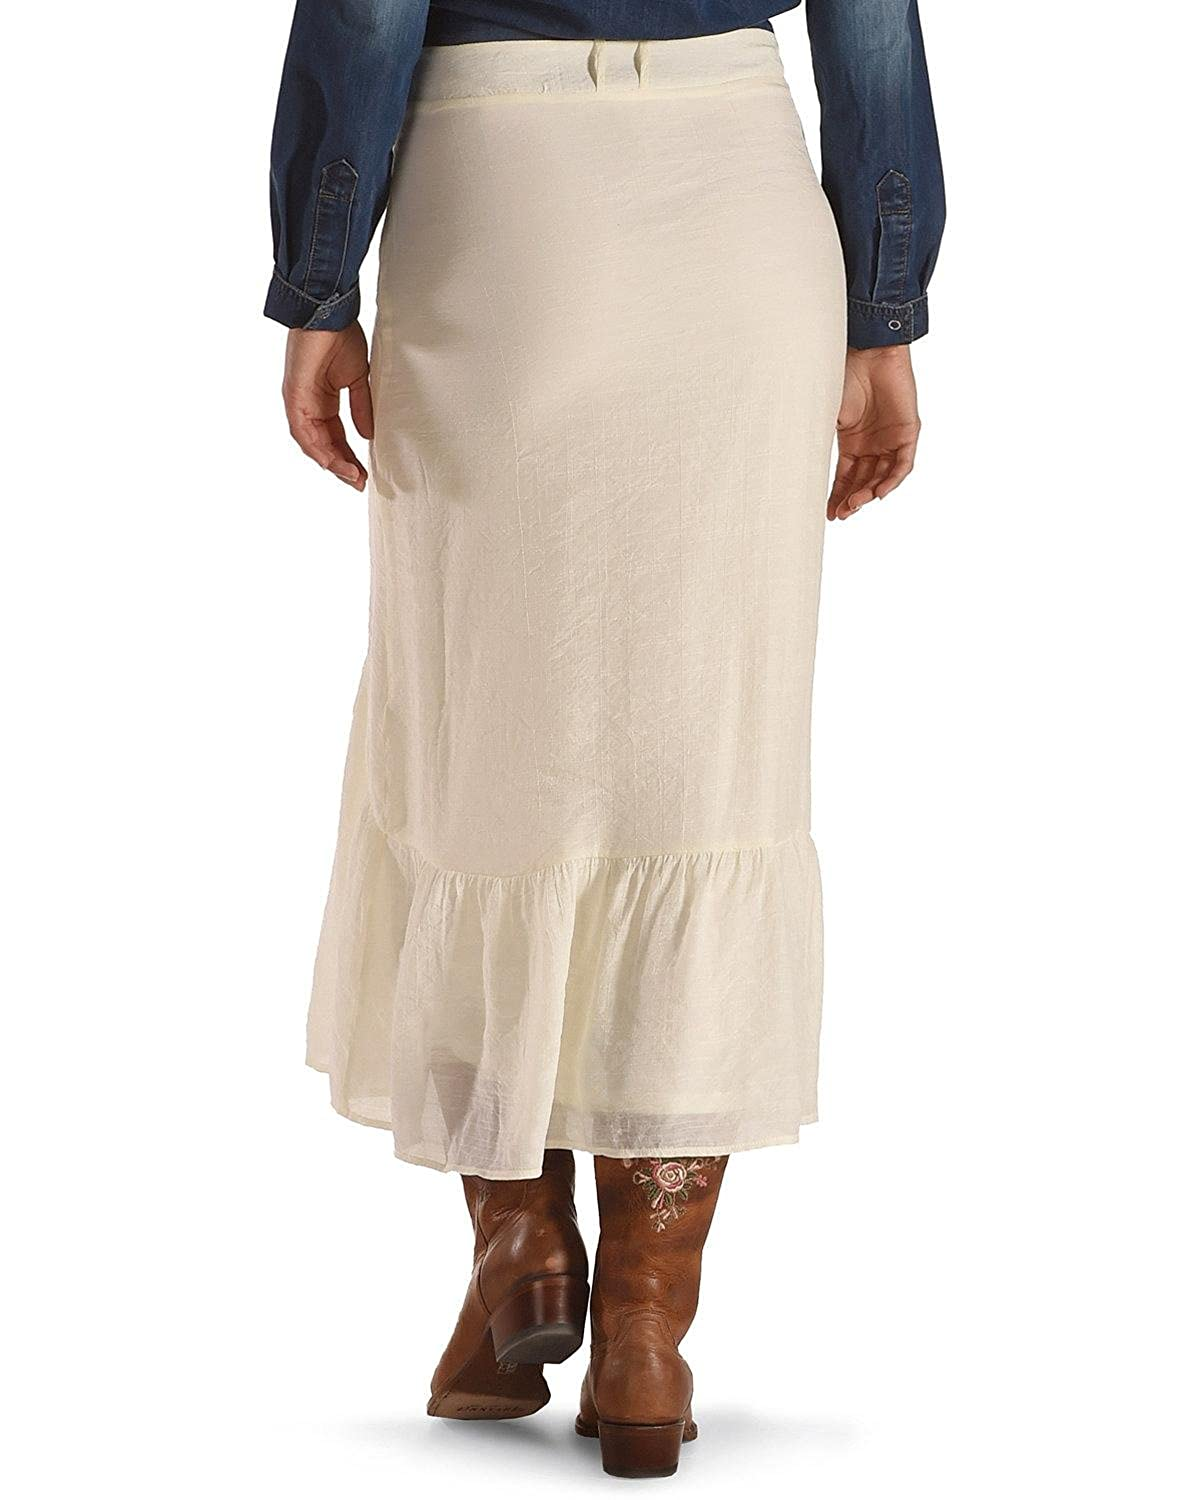 e893ff013b5 Wrangler Women s Skirt with Buttons Down Front Vanilla X-Large   Amazon.co.uk  Clothing